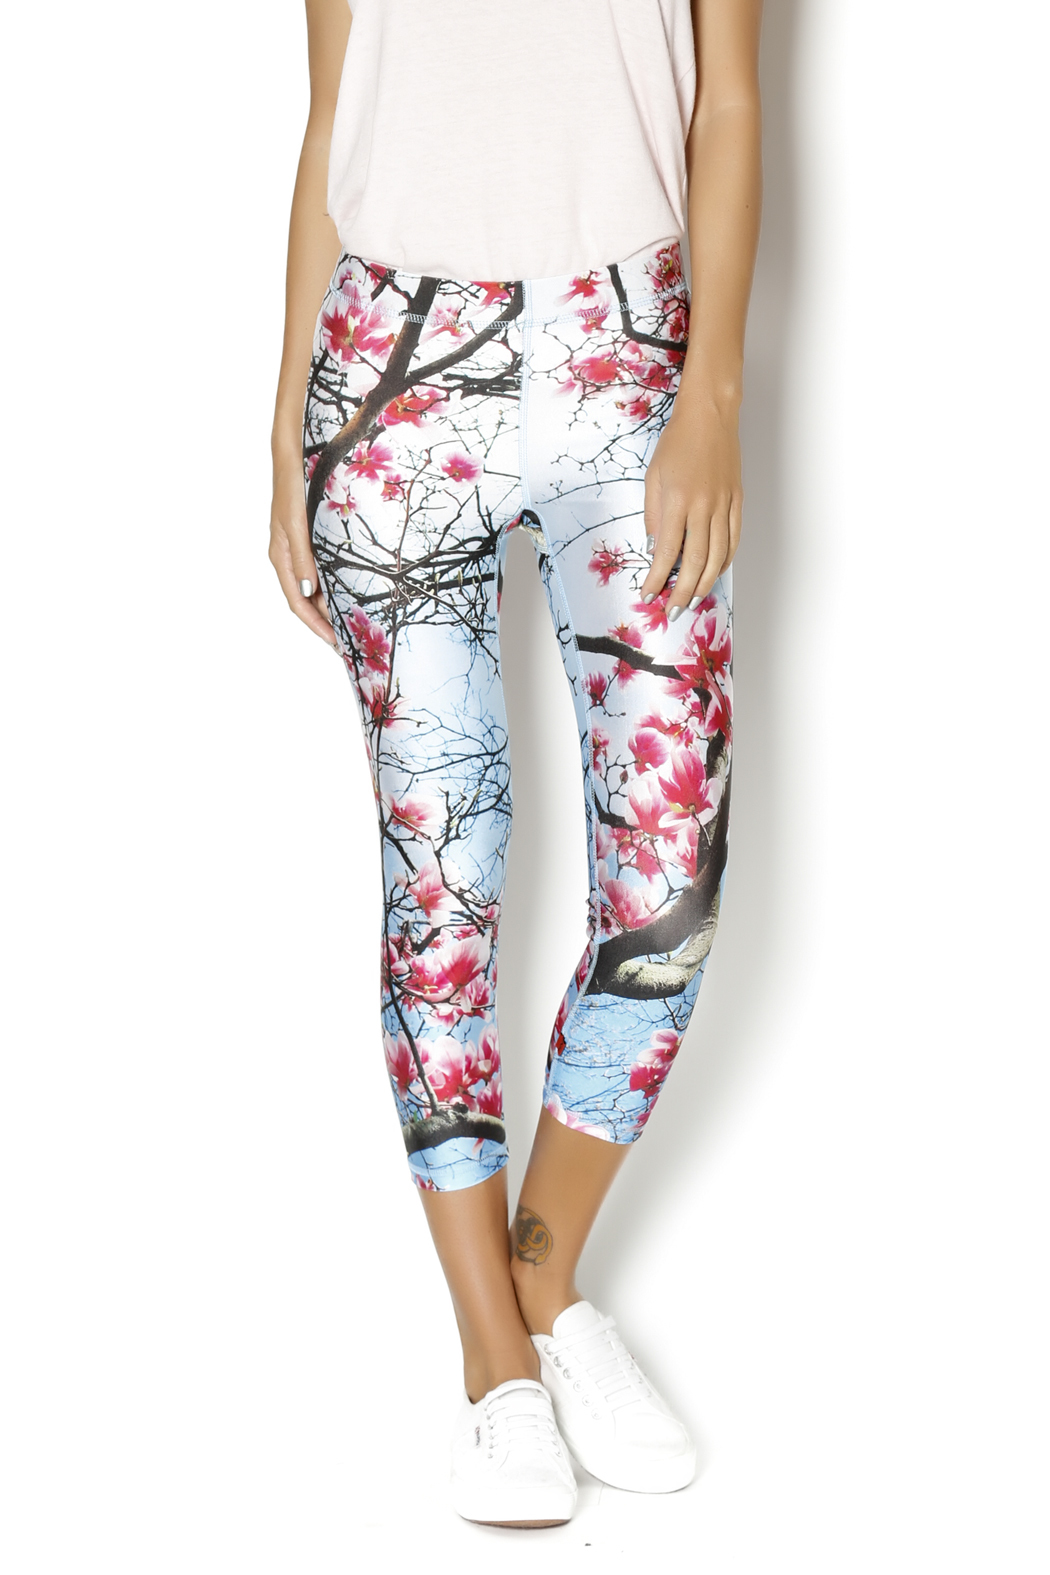 ce06987d3ba3e Zara Terez Cherry Blossom Capri Leggings from Kansas City by Trio ...